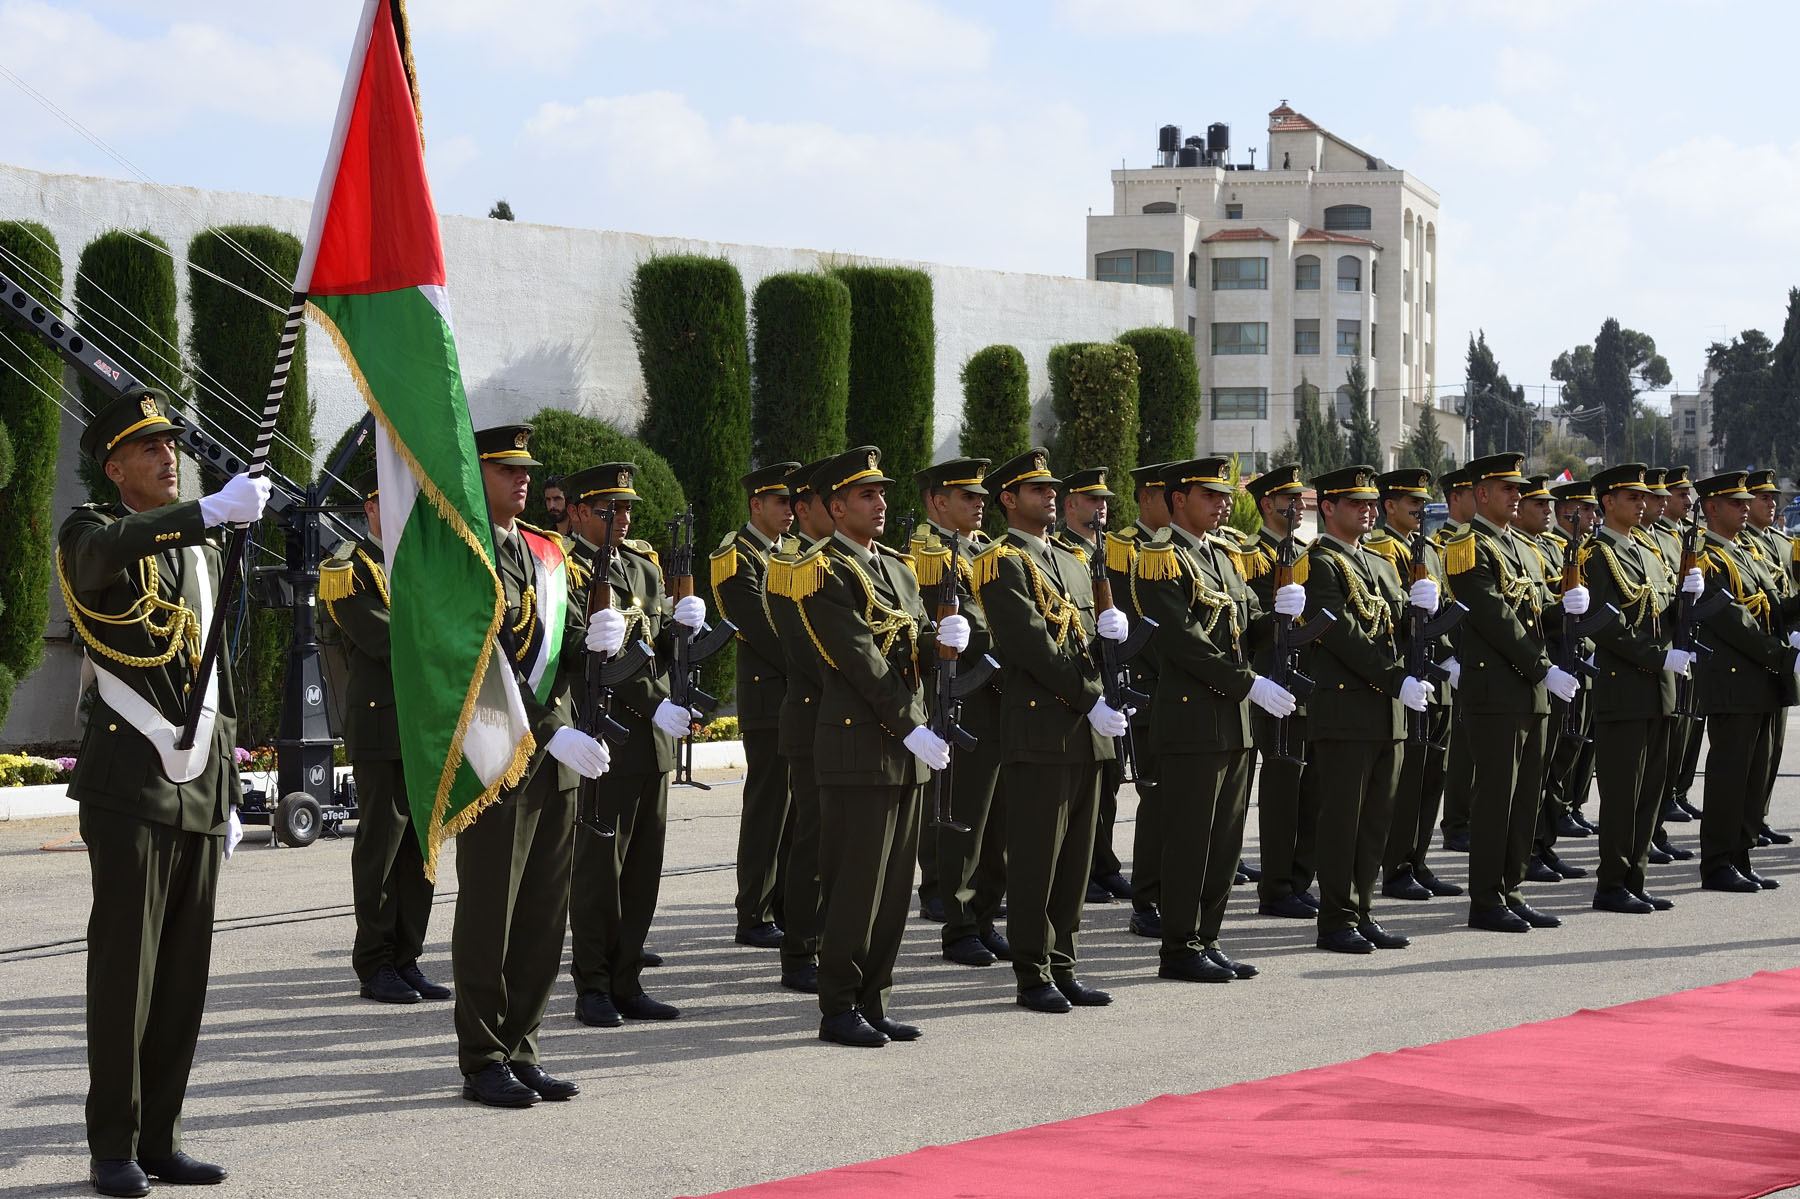 The ceremony was held at the Muqata'a Presidential Compound.